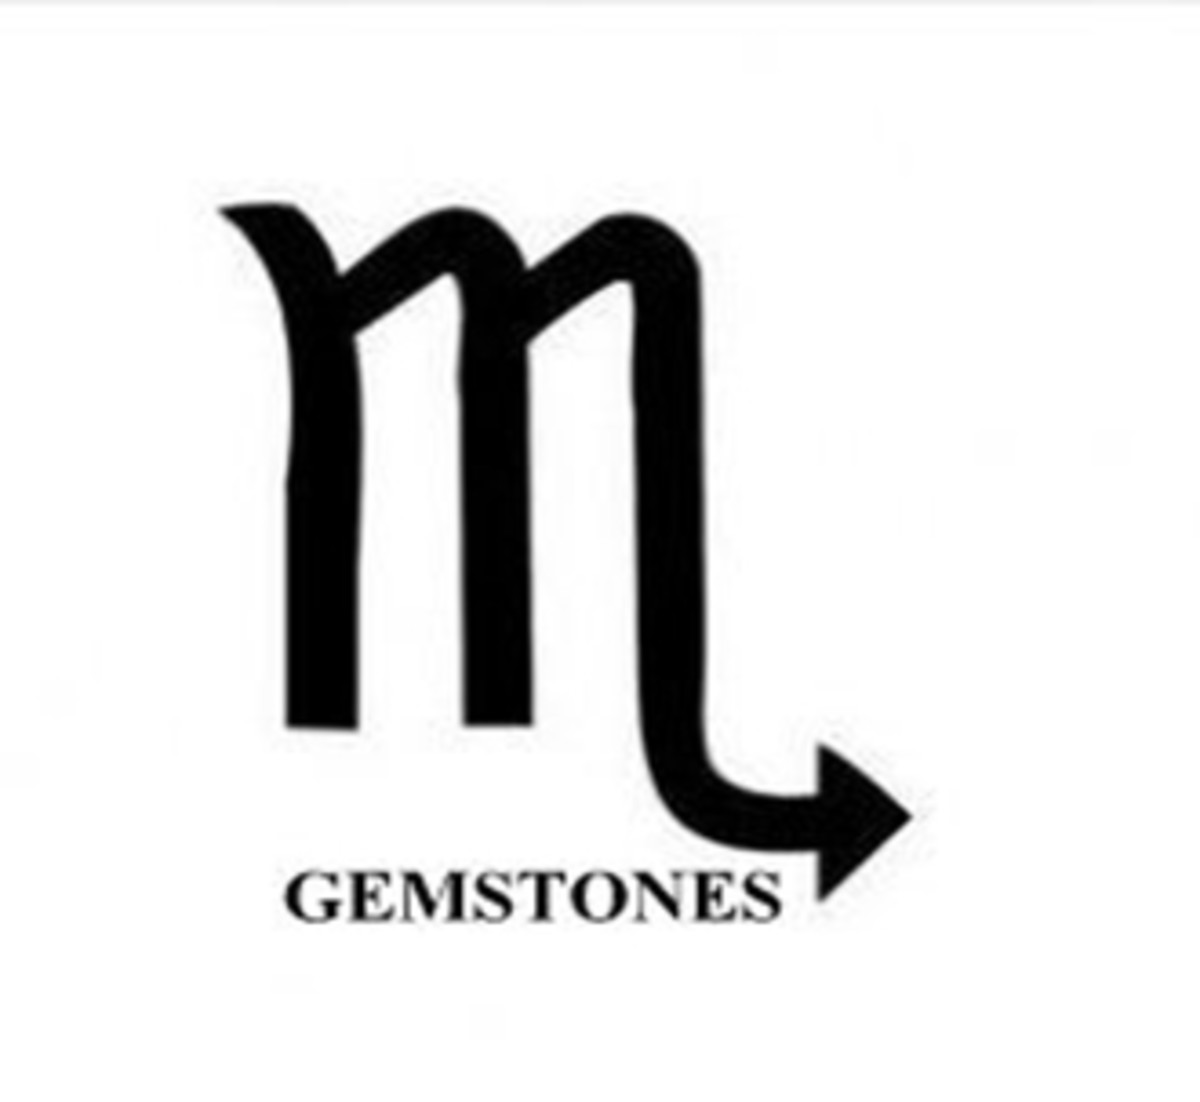 Scorpio Zodiac Sign Gemstones